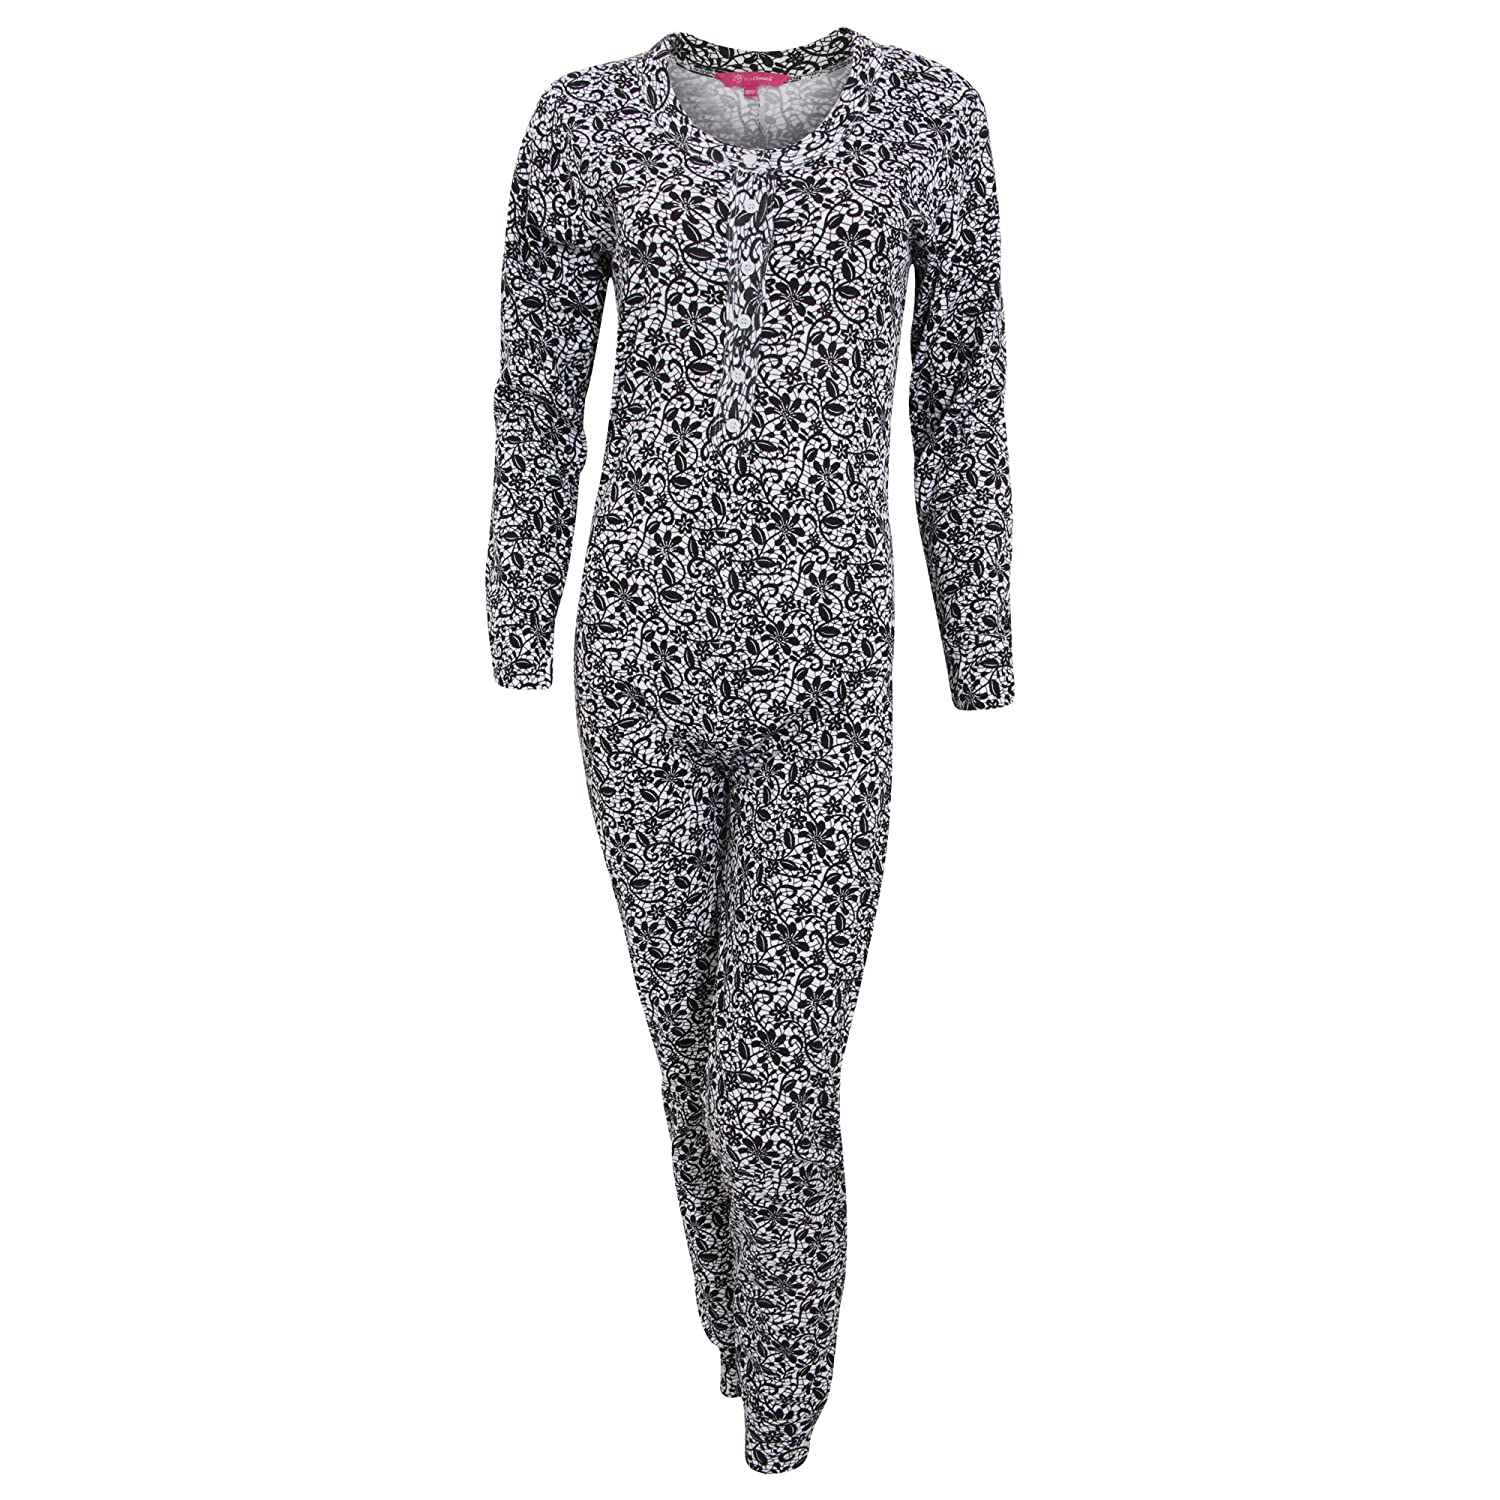 Universal Textiles Womens/Ladies Thermal Floral Mosaic Pattern All In One Bodysuit UTTHERM143_2